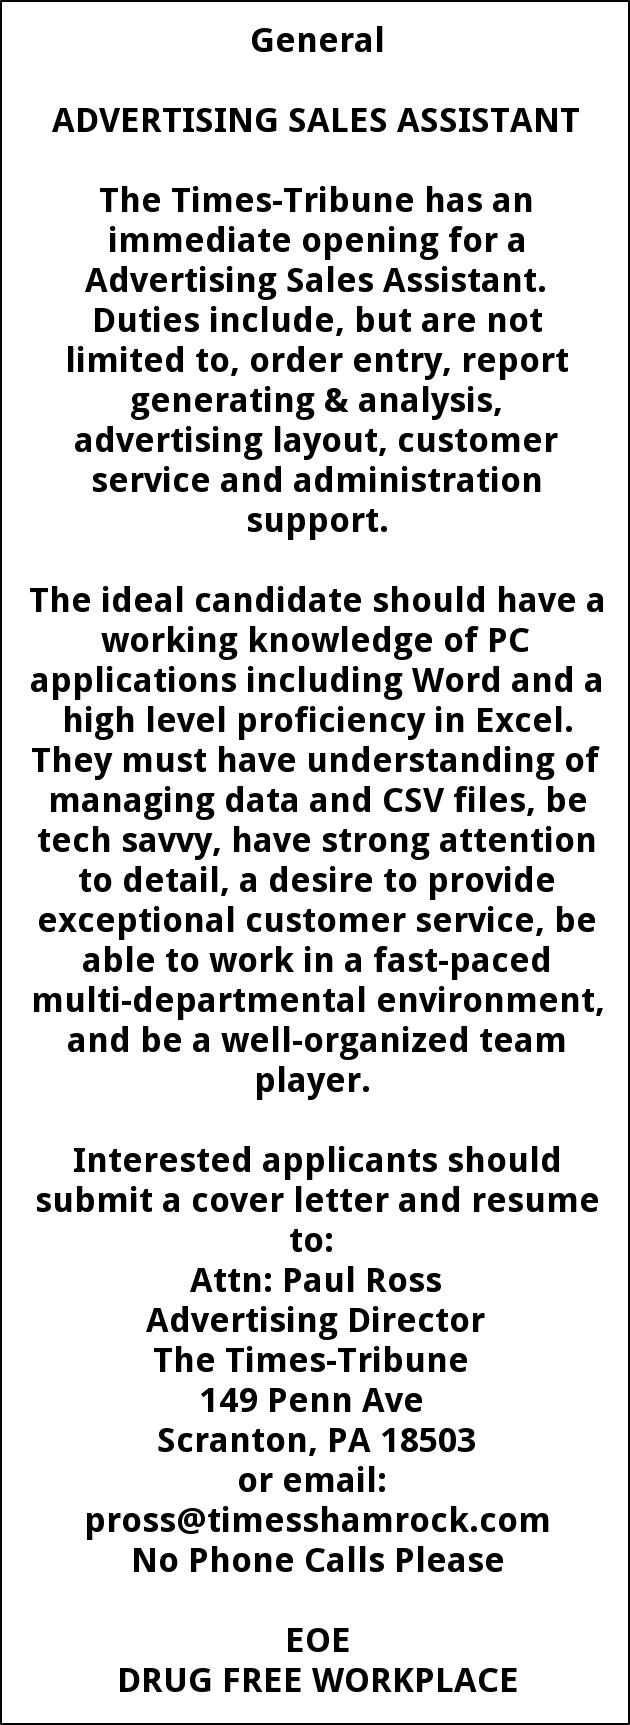 jobs for times shamrock communications in scranton pa general advertising sales assistant